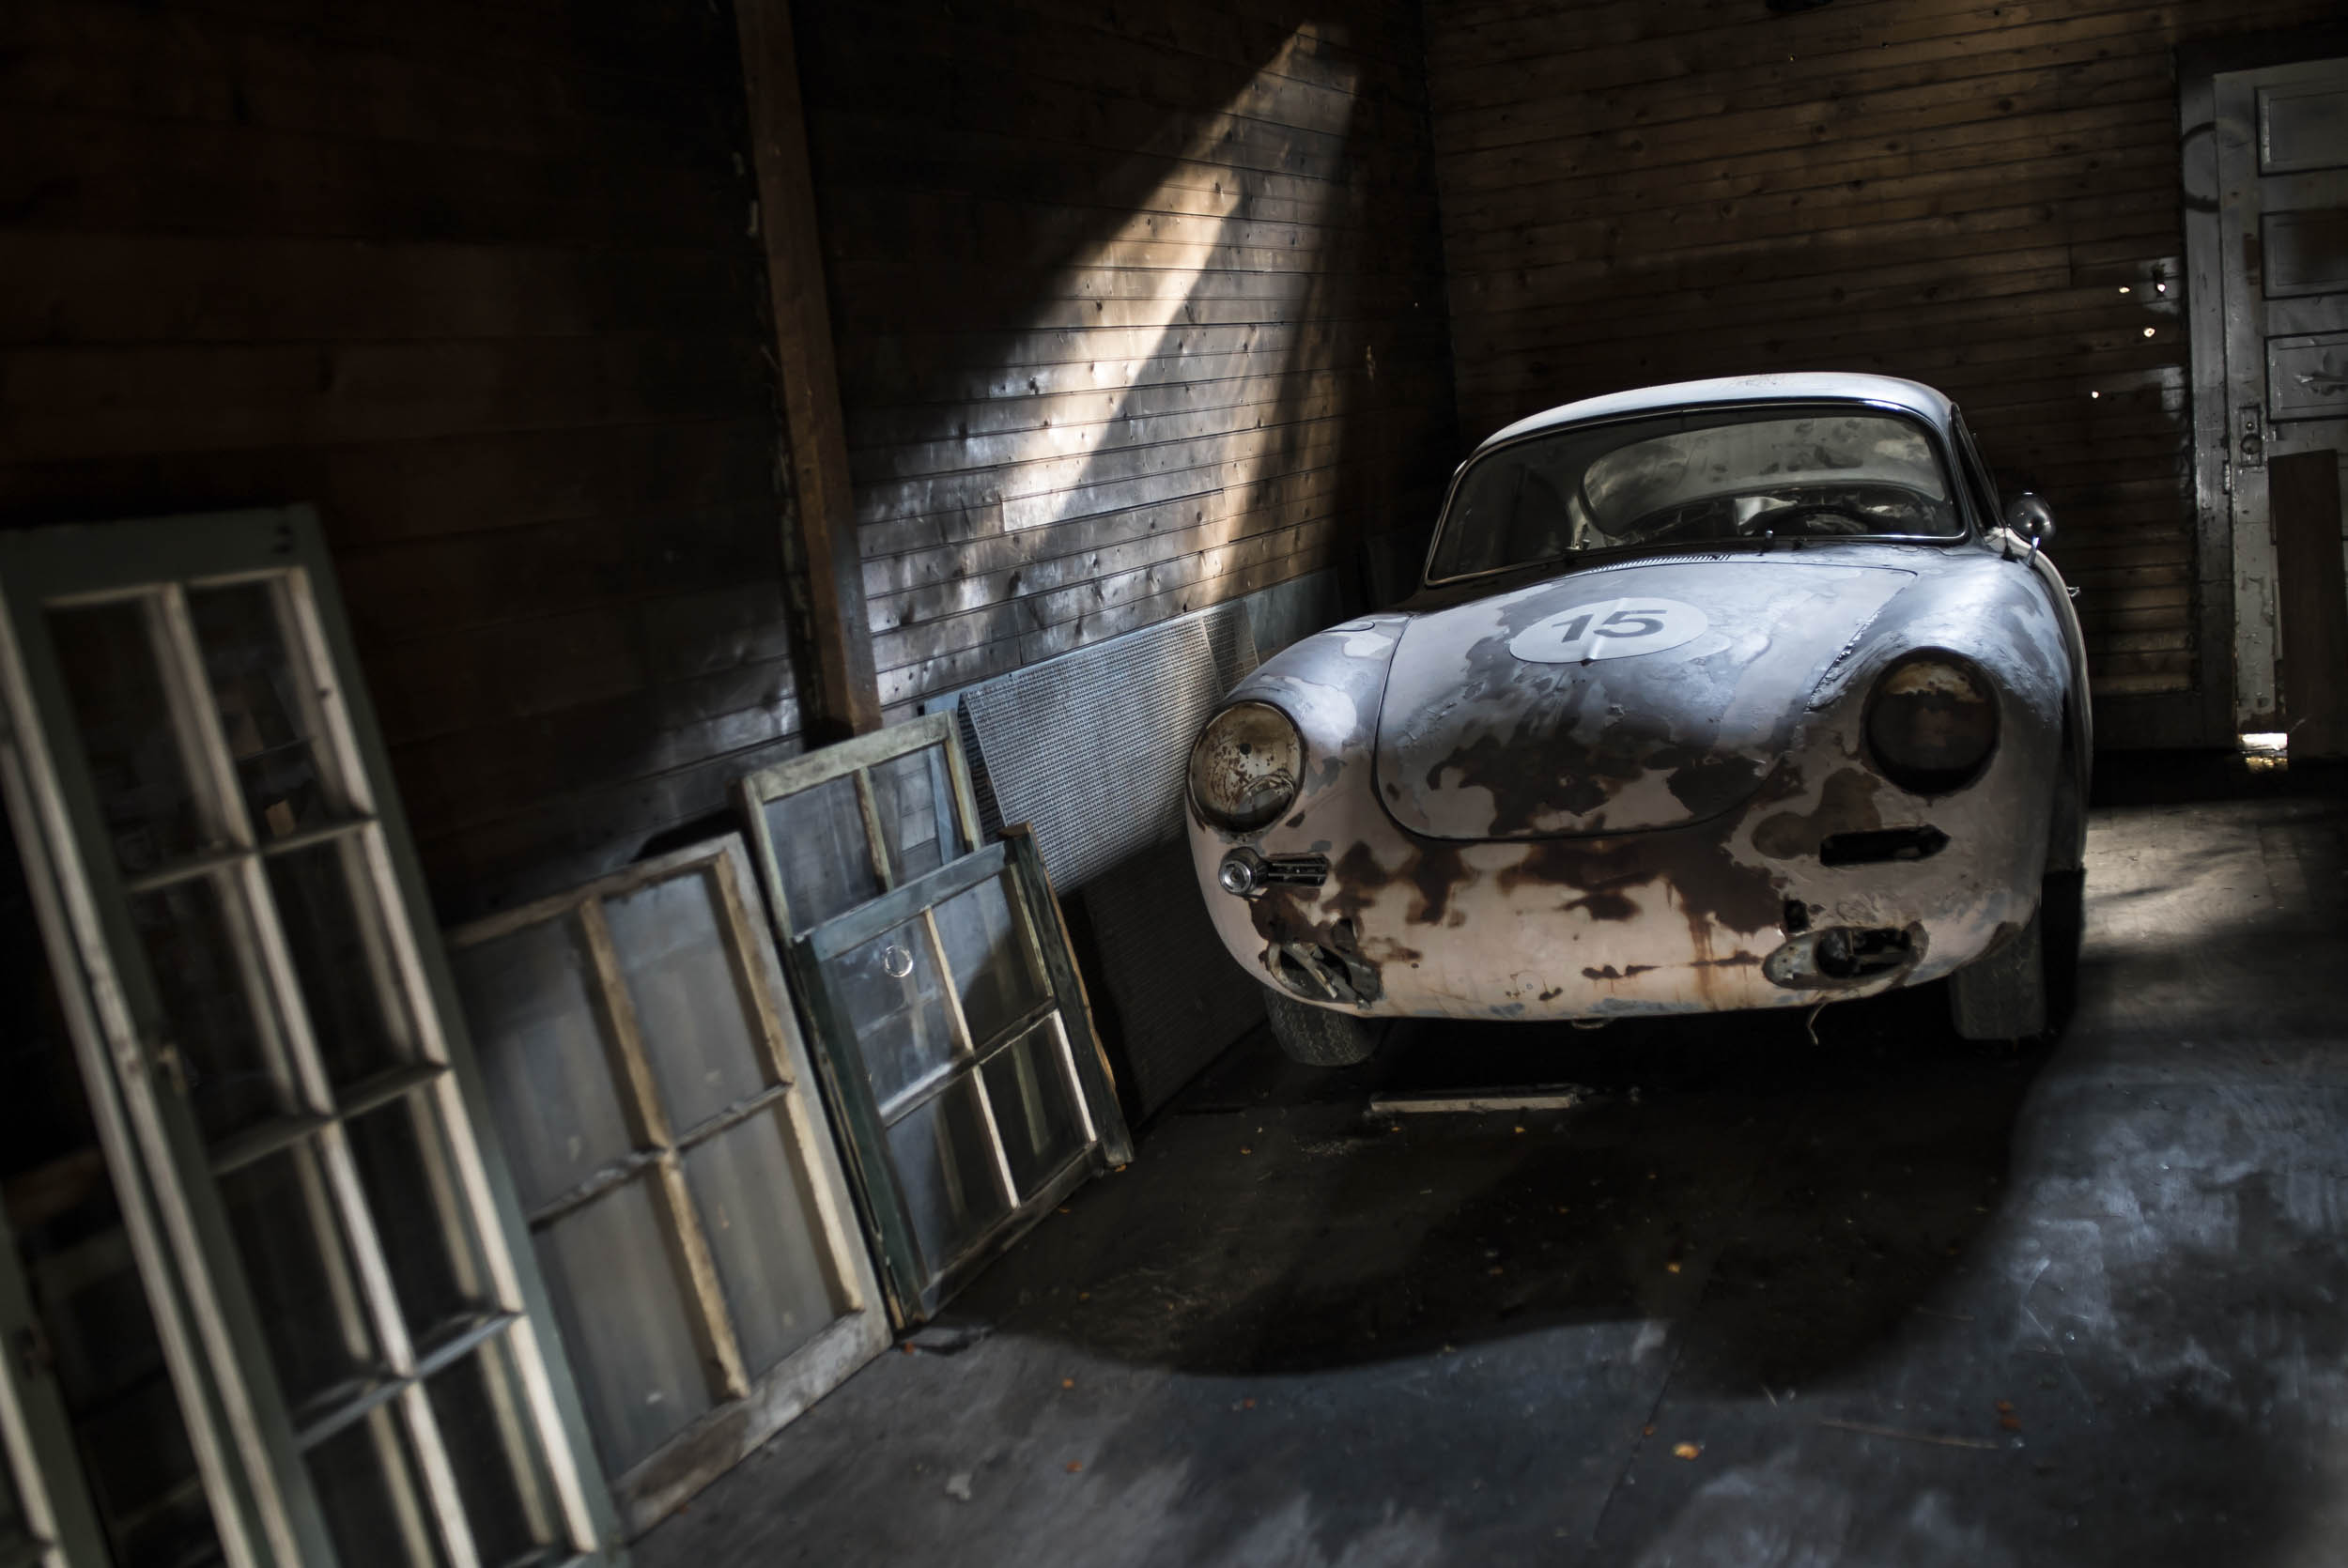 A Porsche 356C that has spent more than half its life above 10,000 feet in Leadville, Colorado, including a stint in a field, is remarkably well preserved, thanks to the dry air.